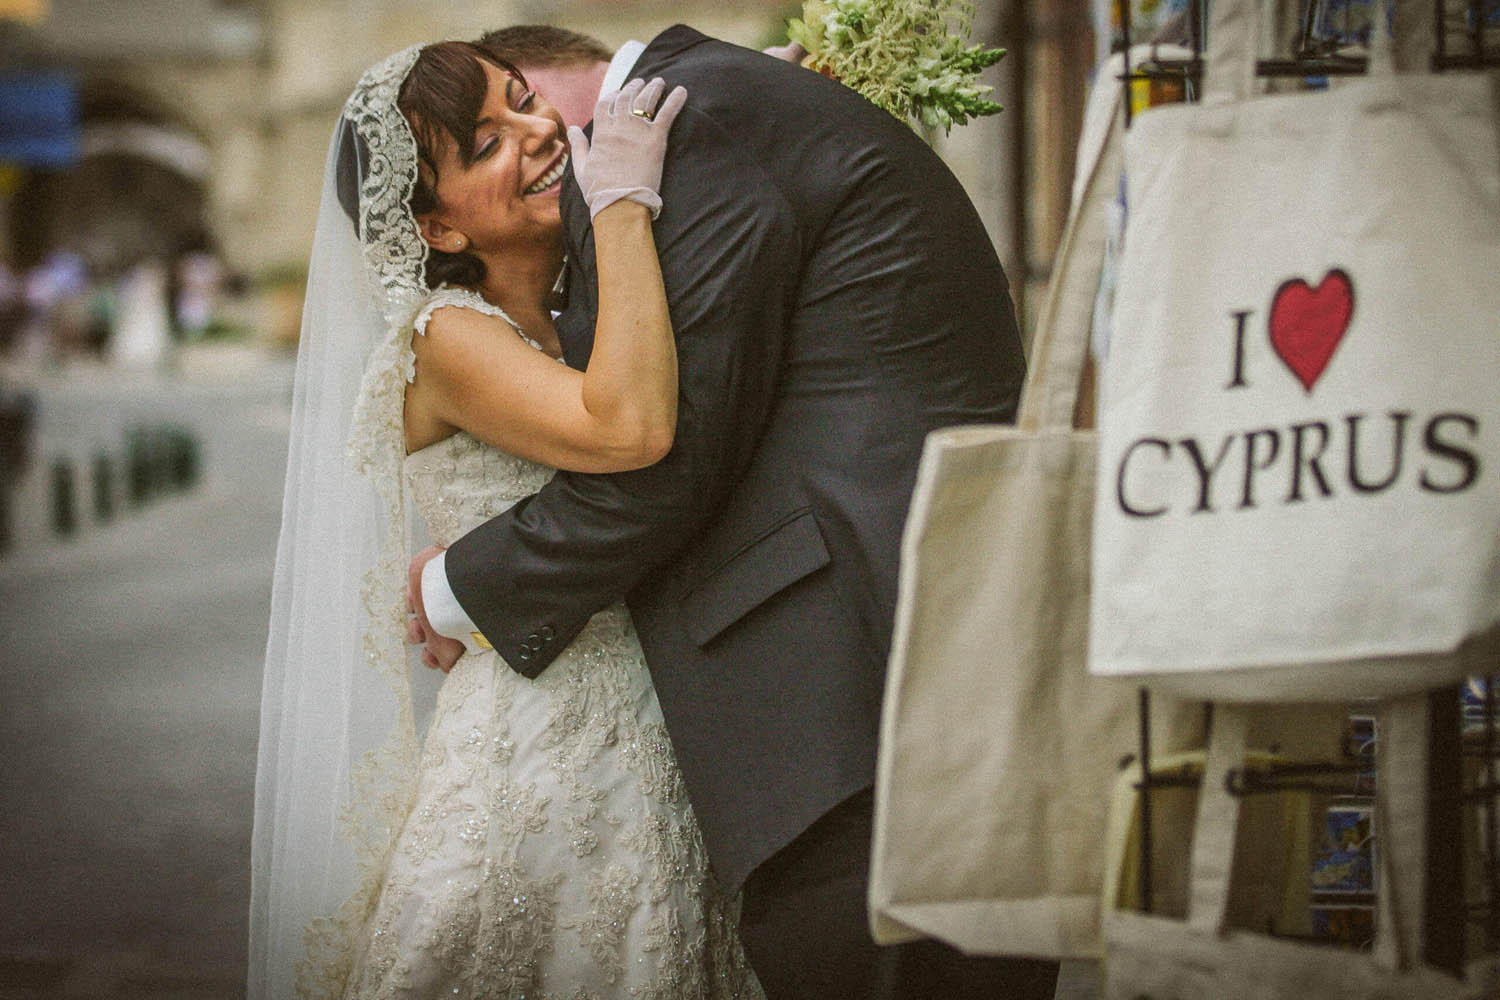 Bride hugging groom with sign on bag reading I love Cyprus